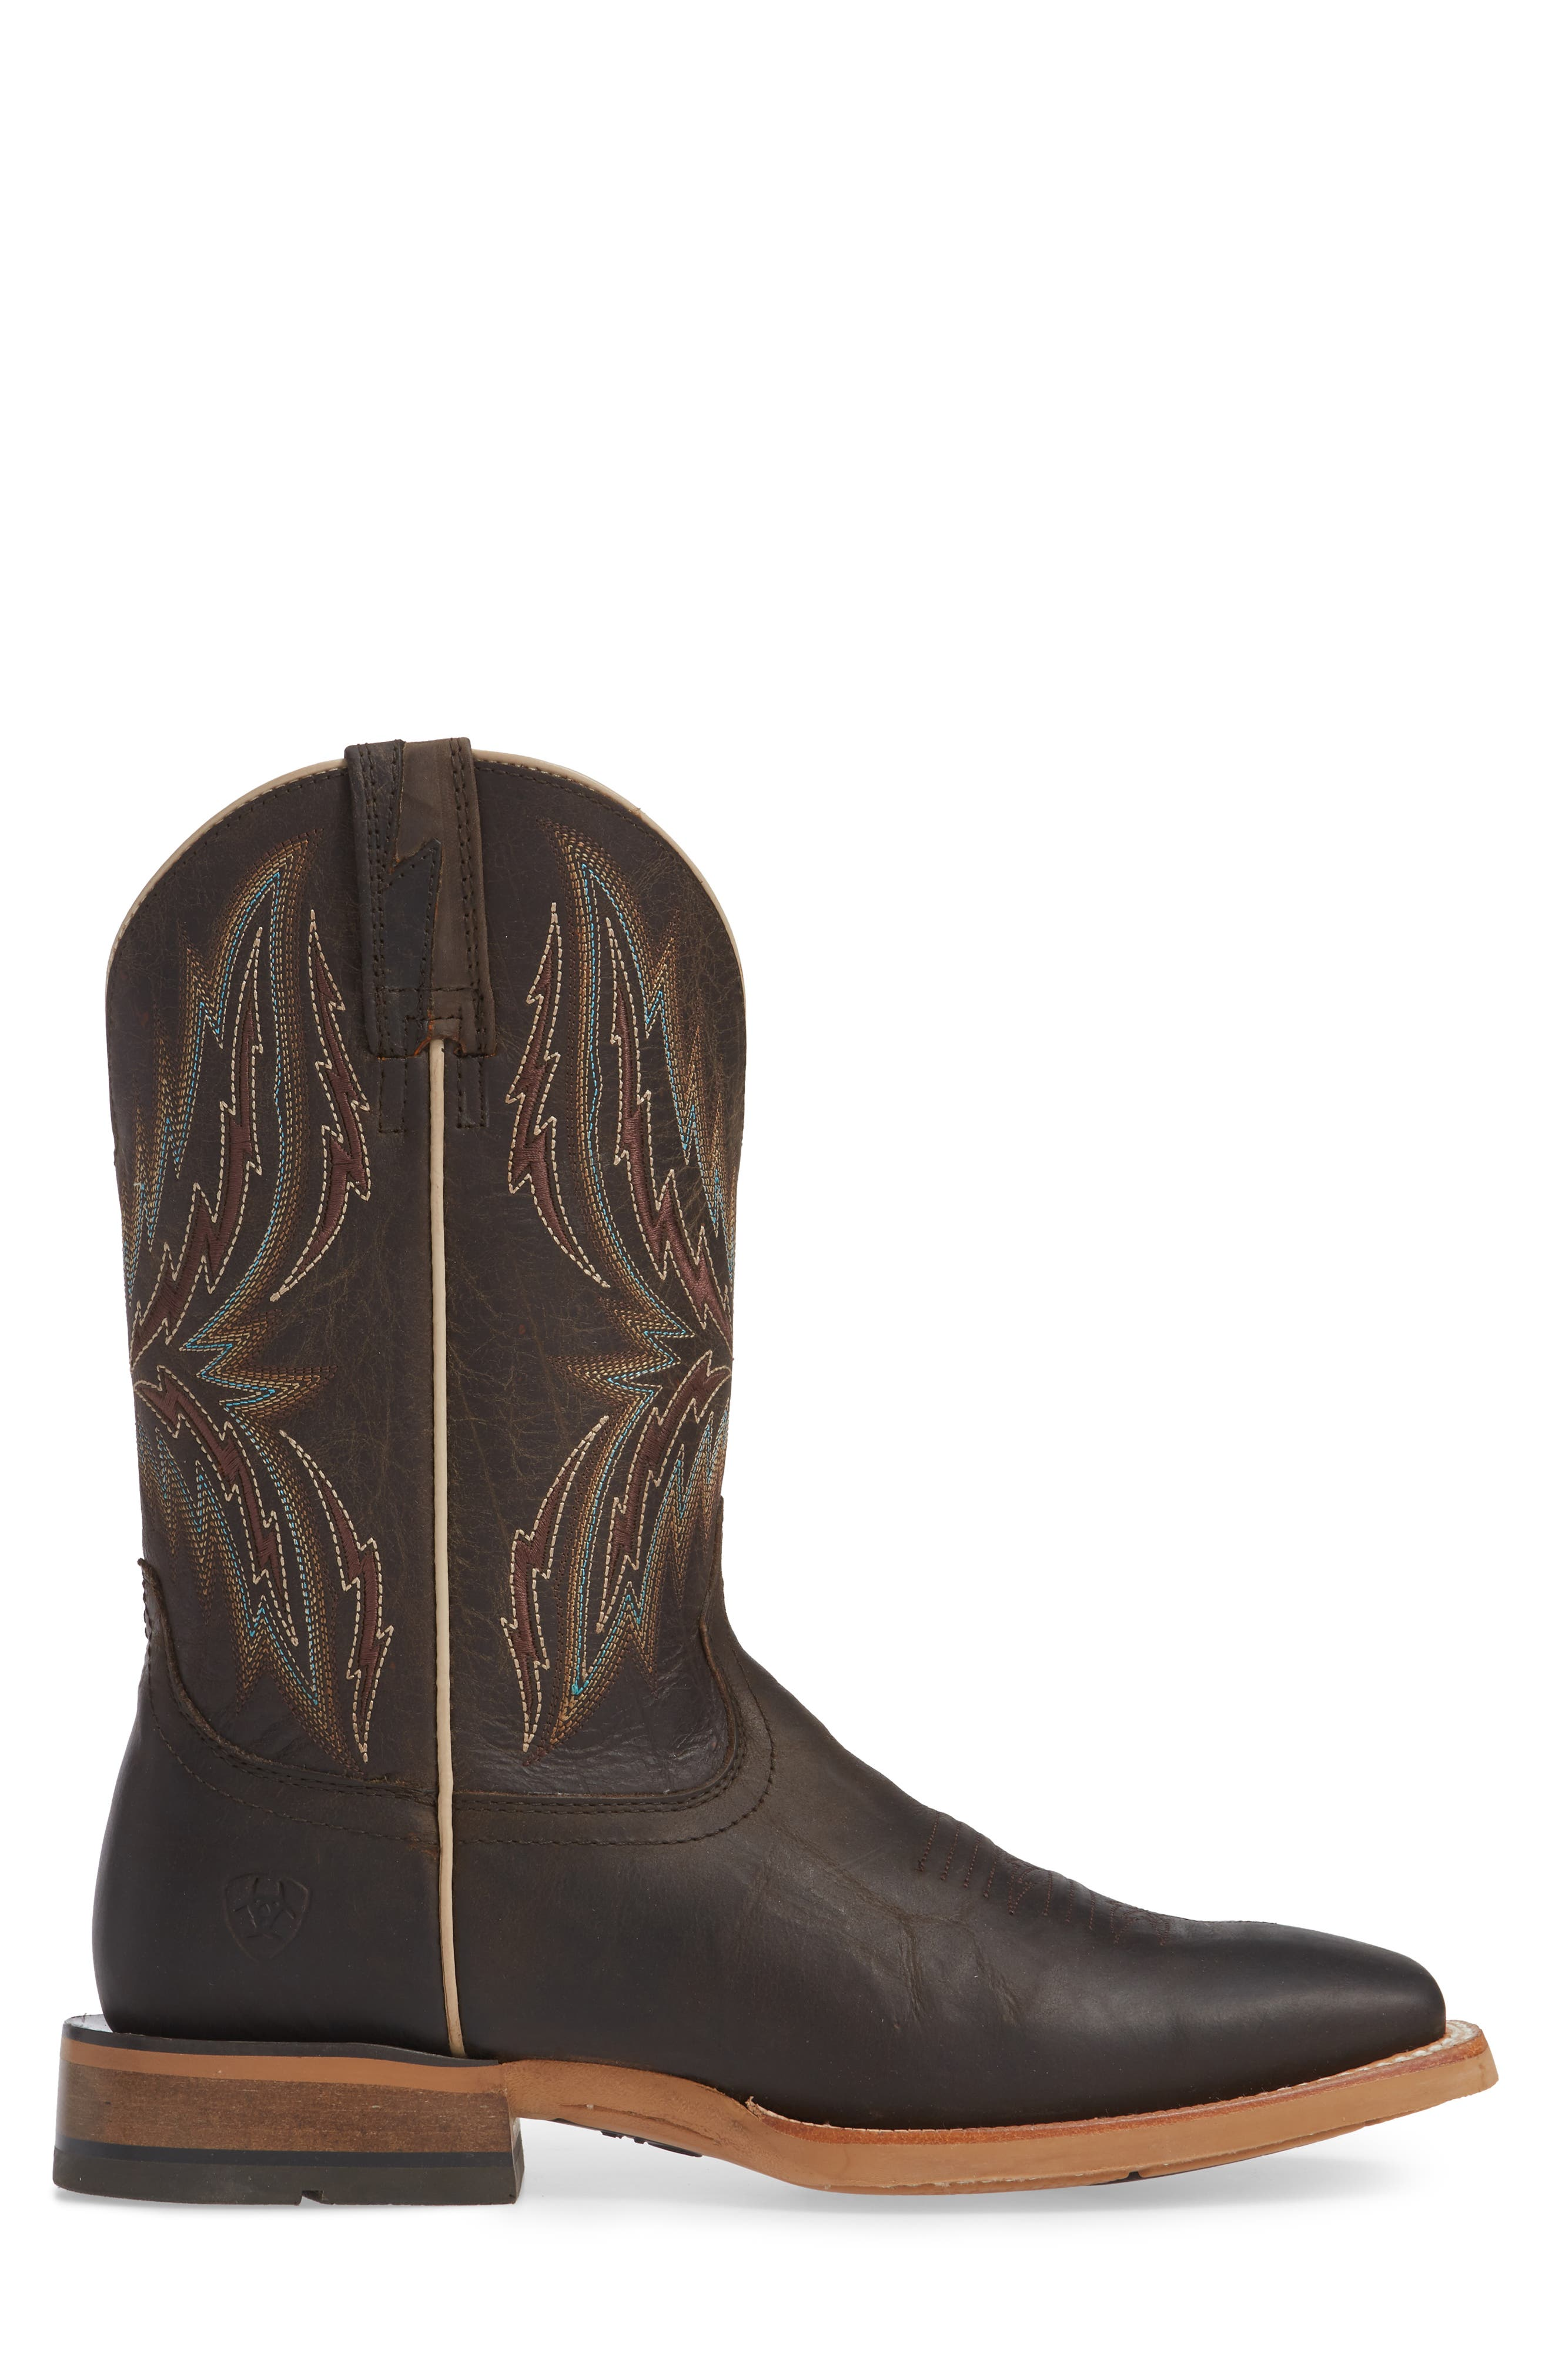 ARIAT, Arena Rebound Cowboy Boot, Alternate thumbnail 3, color, 200